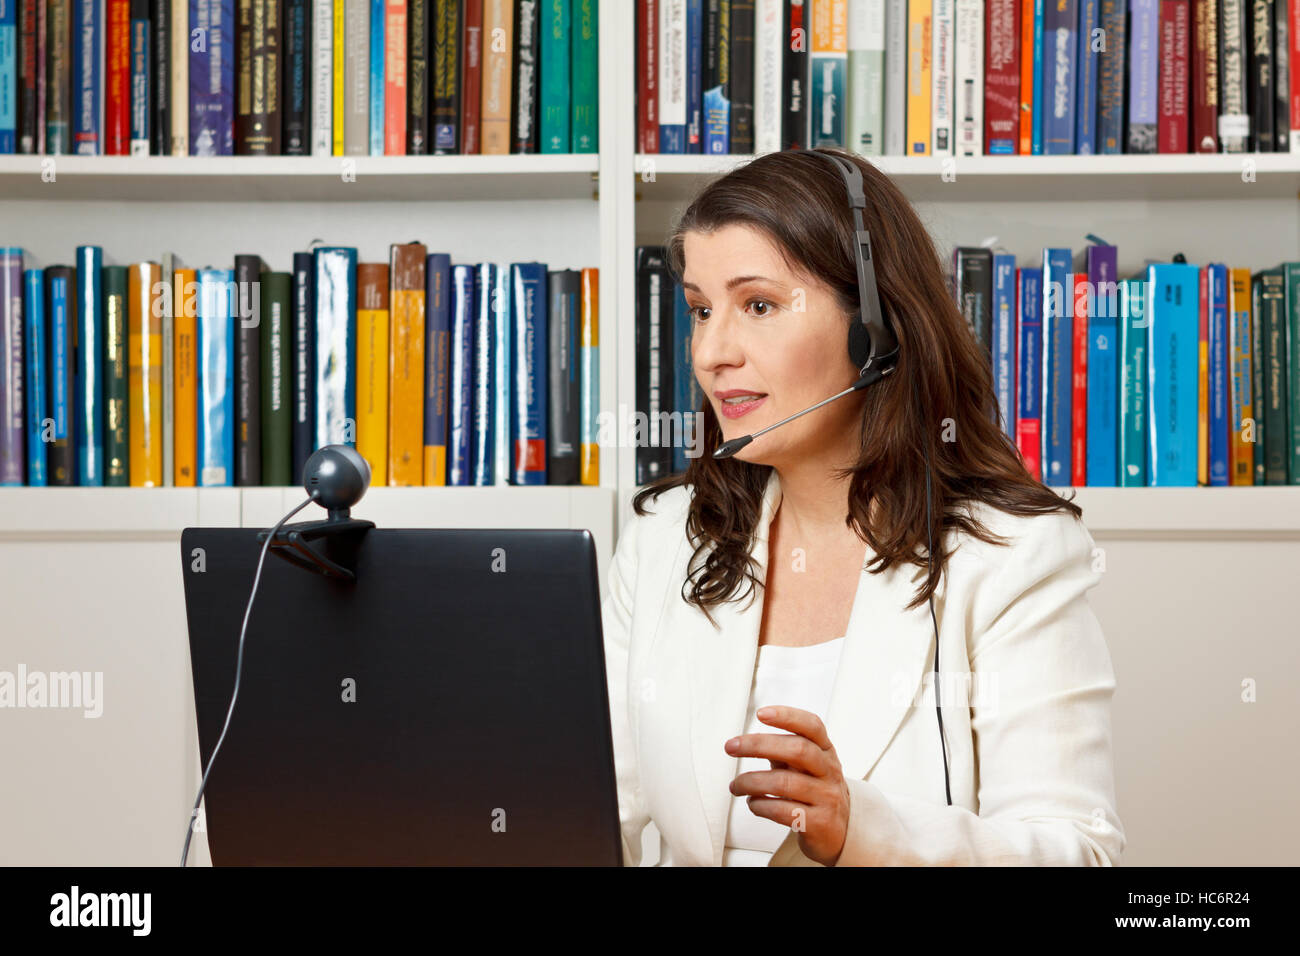 Teacher or tutor of a distance university giving an online lecture or tutorial in her office, mooc - Stock Image